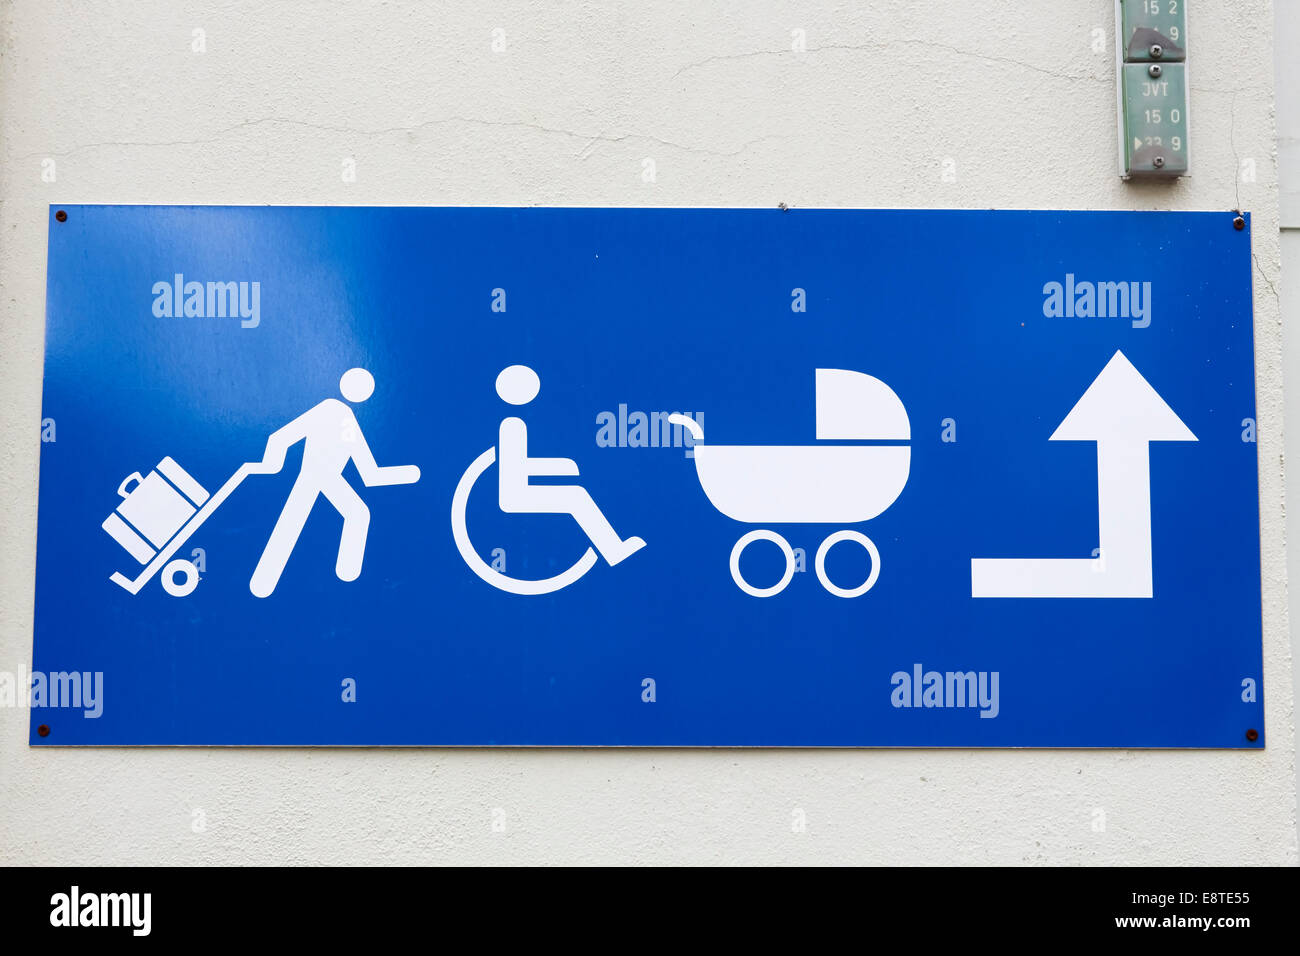 passegers guidance sign, Kuopio railway station, Finland - Stock Image